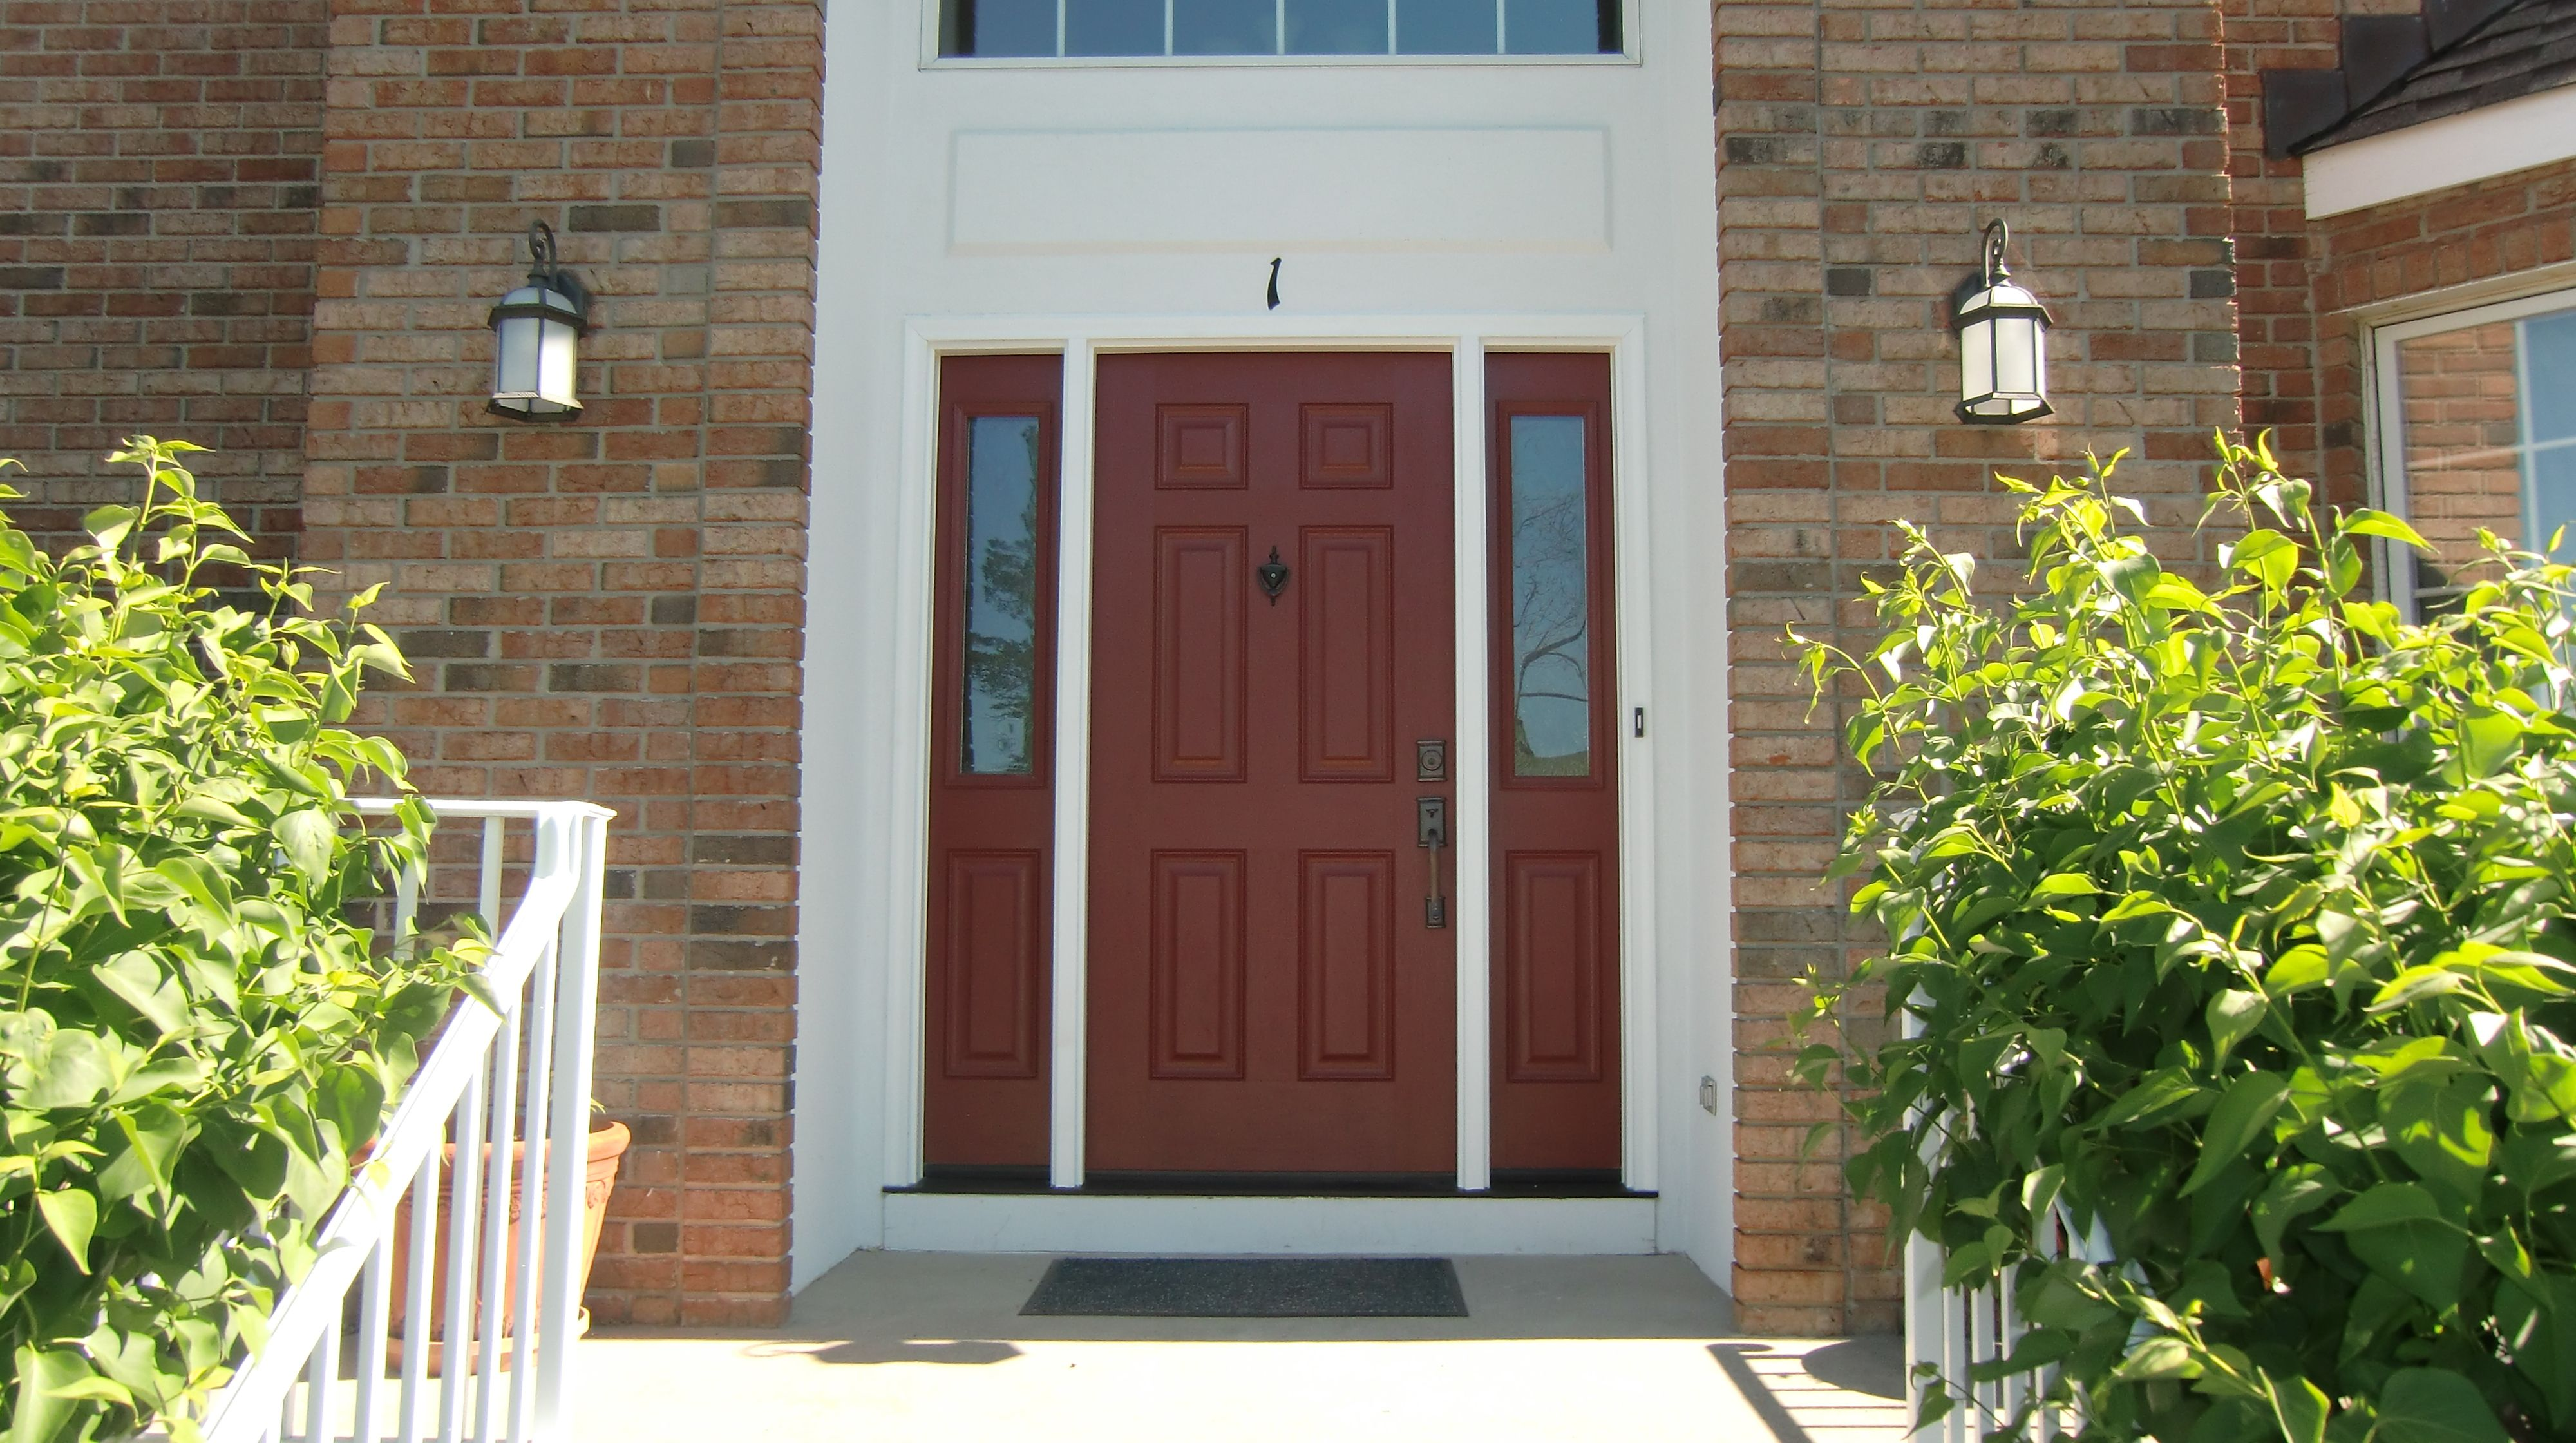 All Provia Entry Doors Meet Or Exceed Energy Star Criteria Energy Star Was Created By The U S Epa And Depart Energy Efficient Door Entry Doors Outdoor Decor